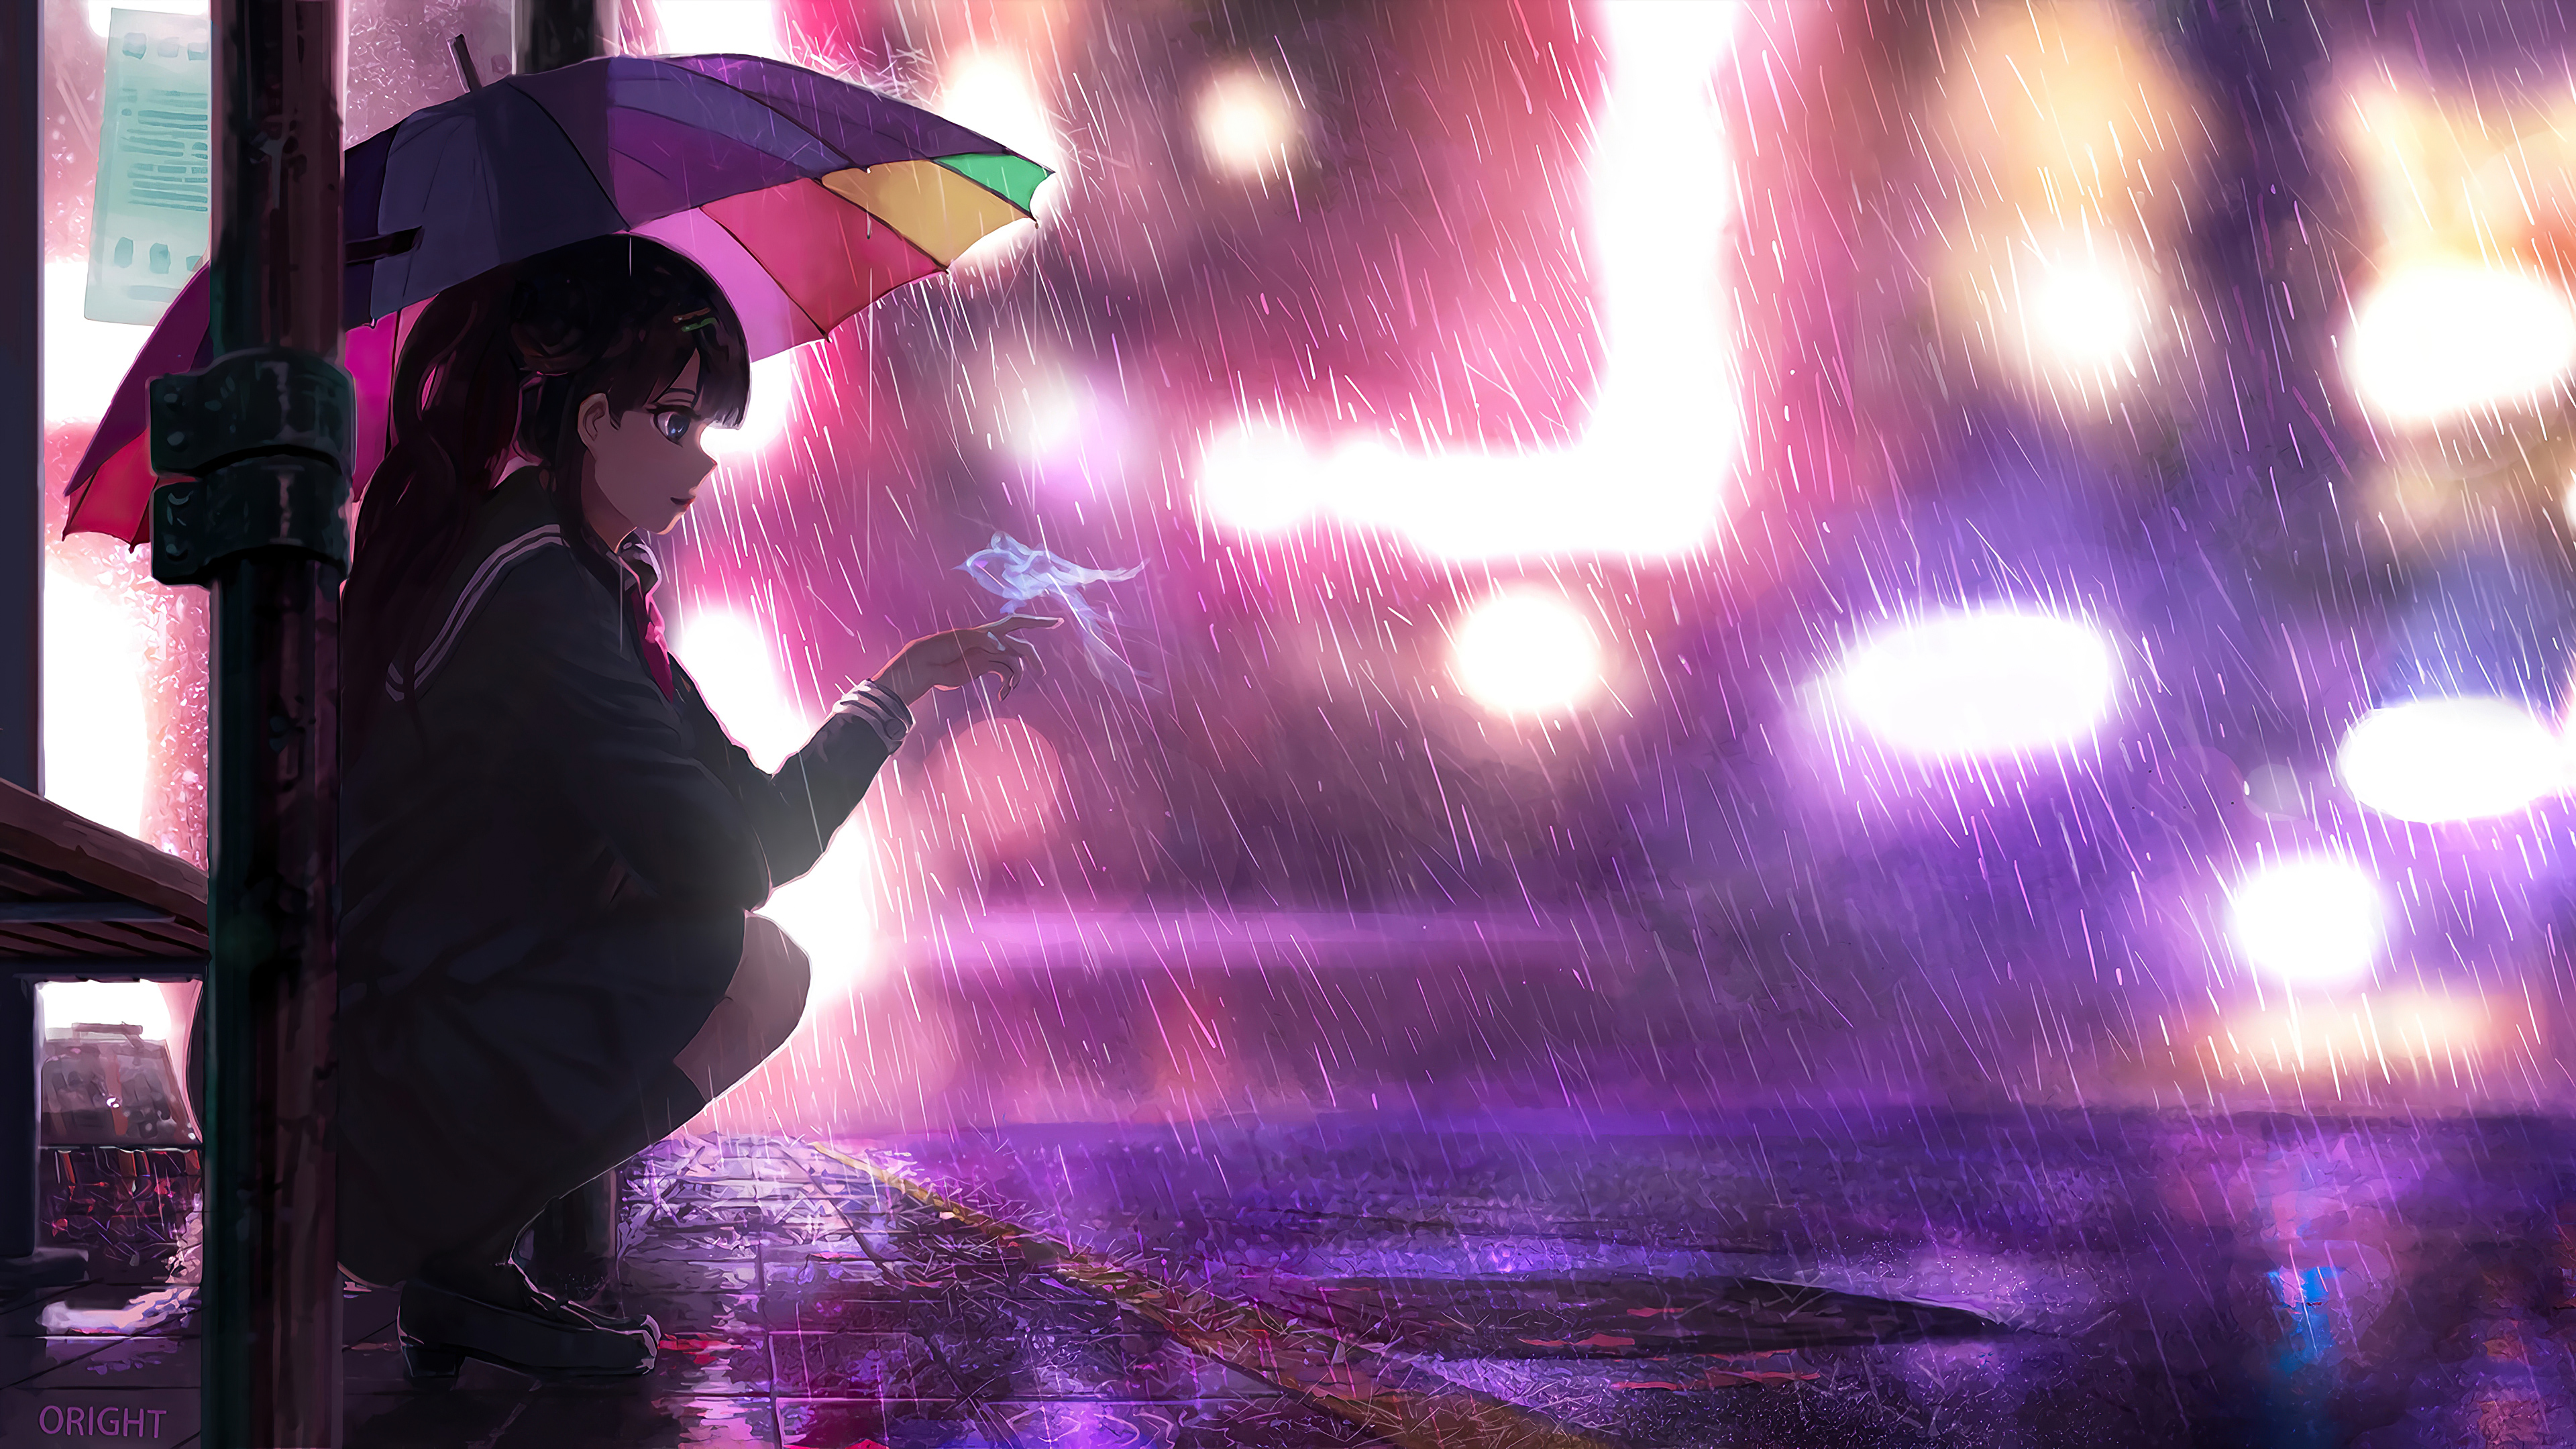 Umbrella Rain Anime Girl 4k Hd Anime 4k Wallpapers Images Backgrounds Photos And Pictures